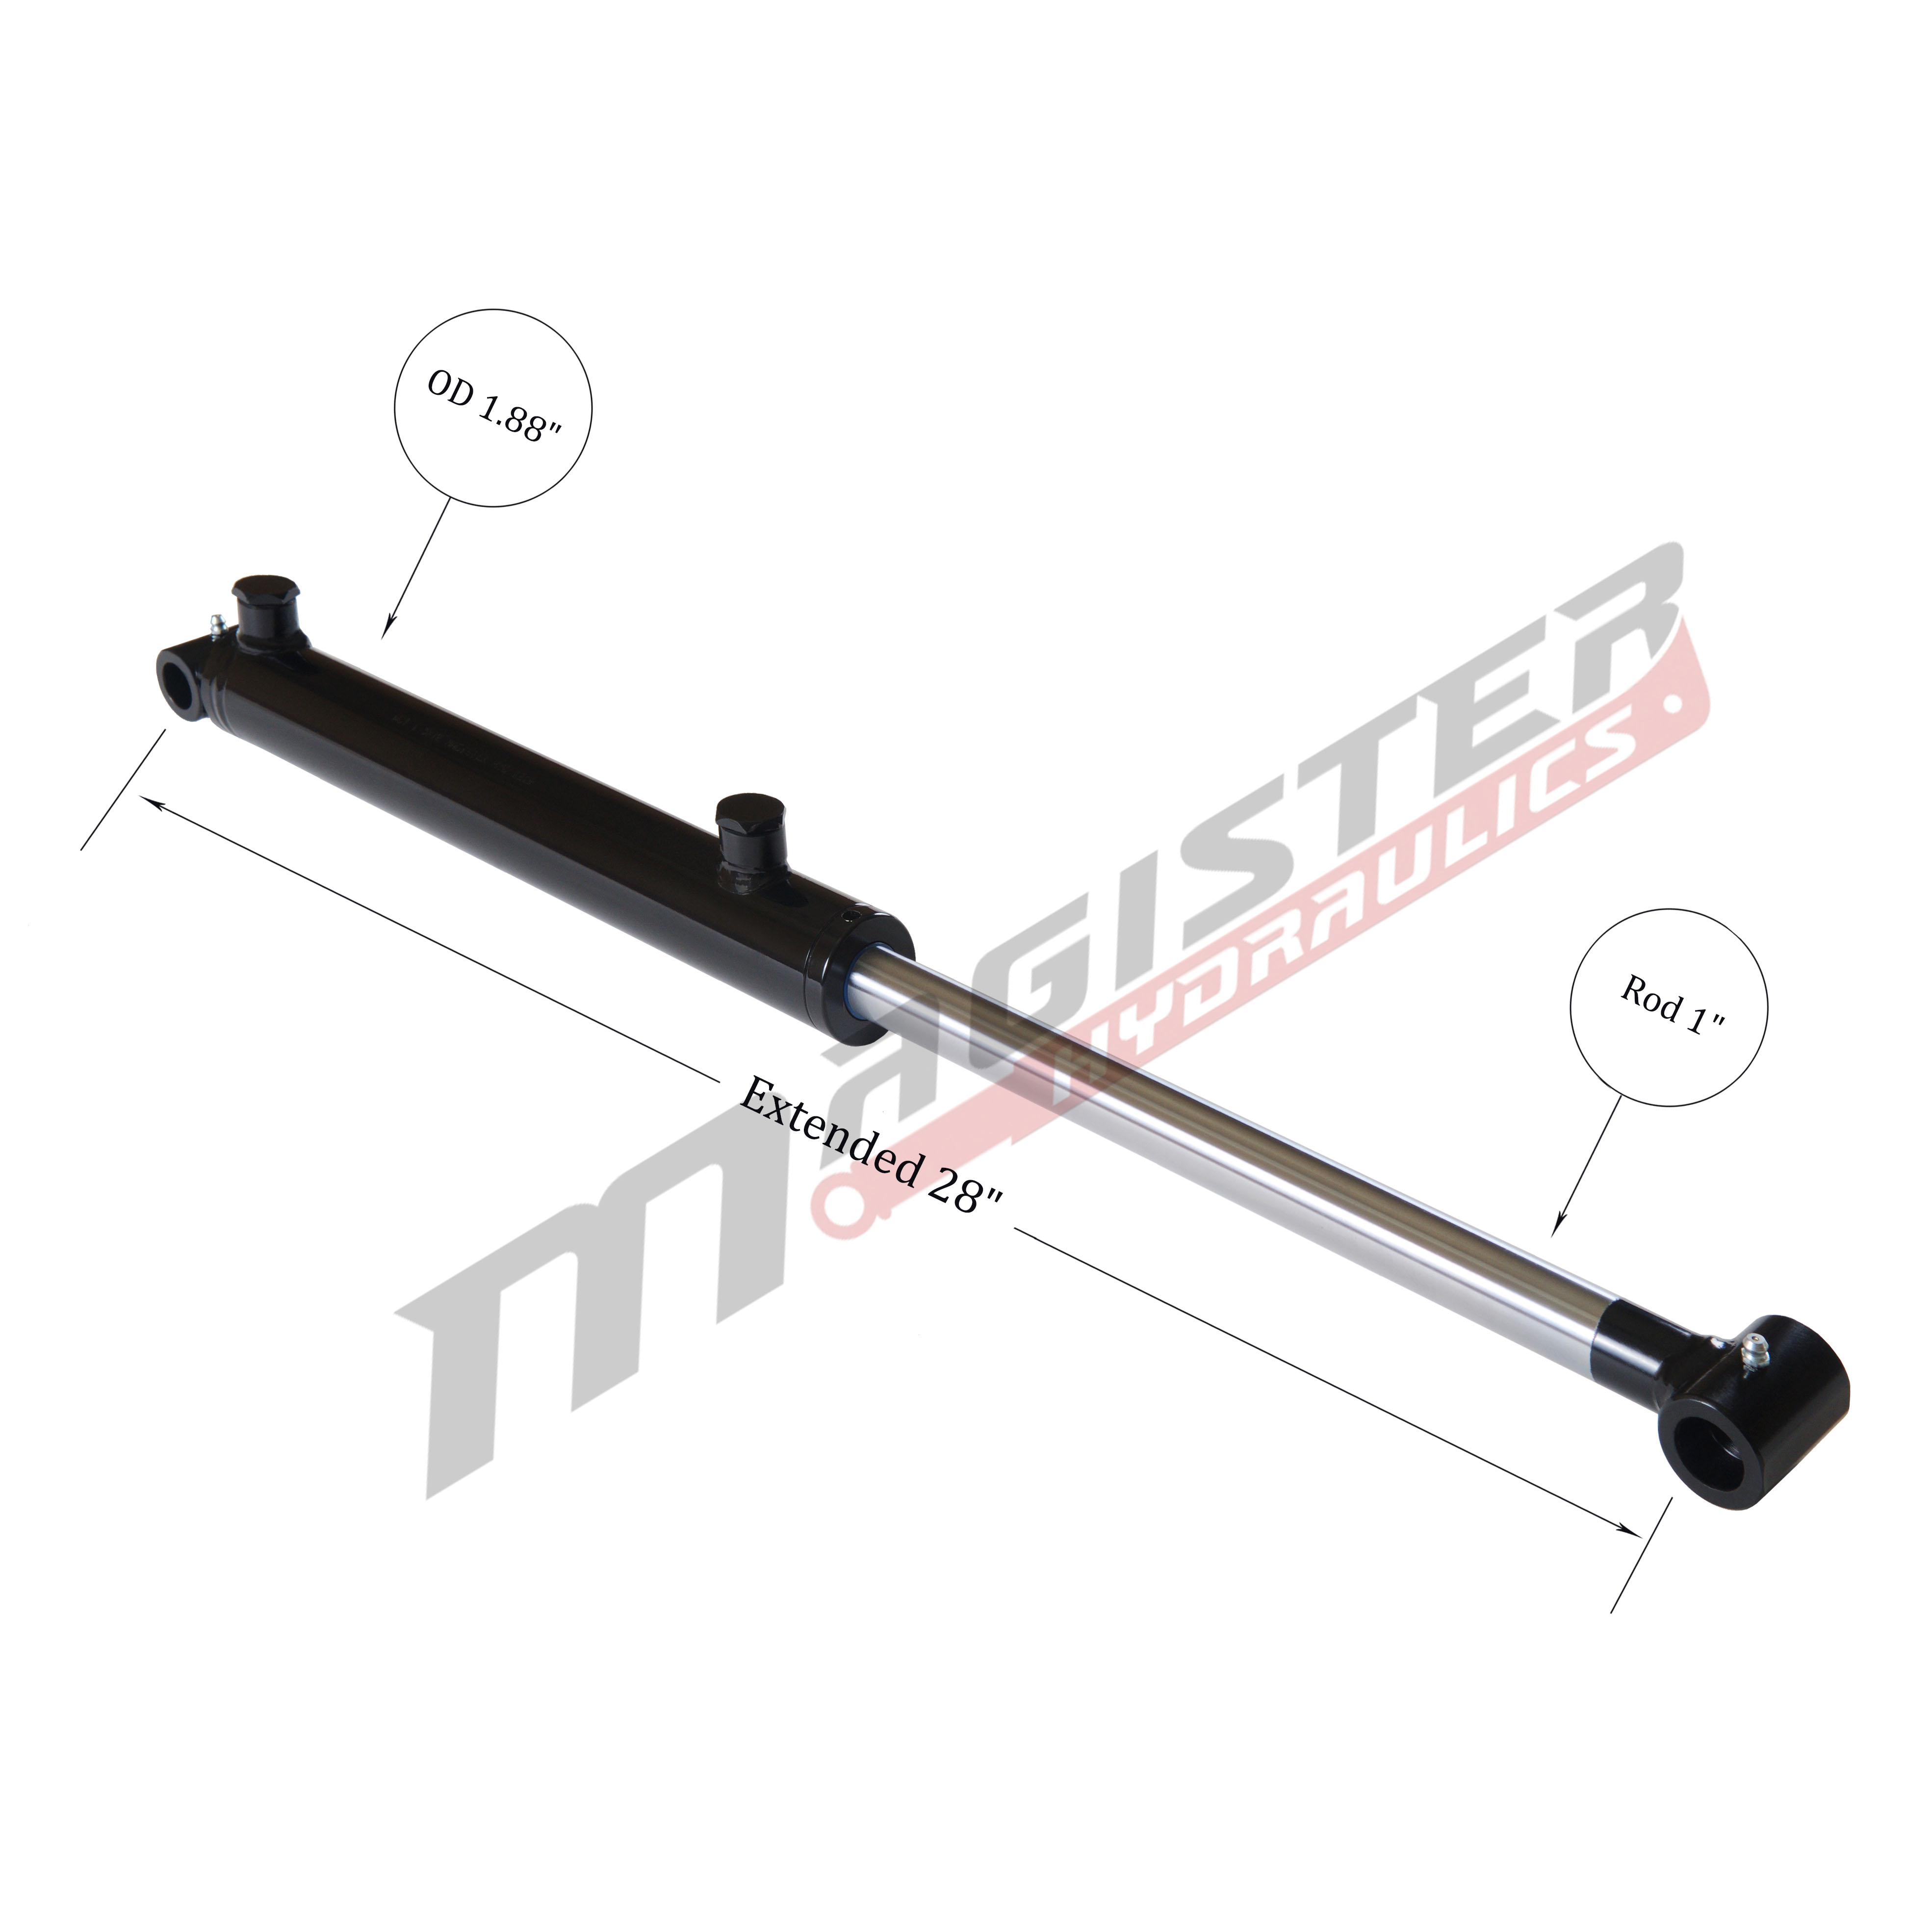 1.5 bore x 10 stroke hydraulic cylinder, welded cross tube double acting cylinder | Magister Hydraulics